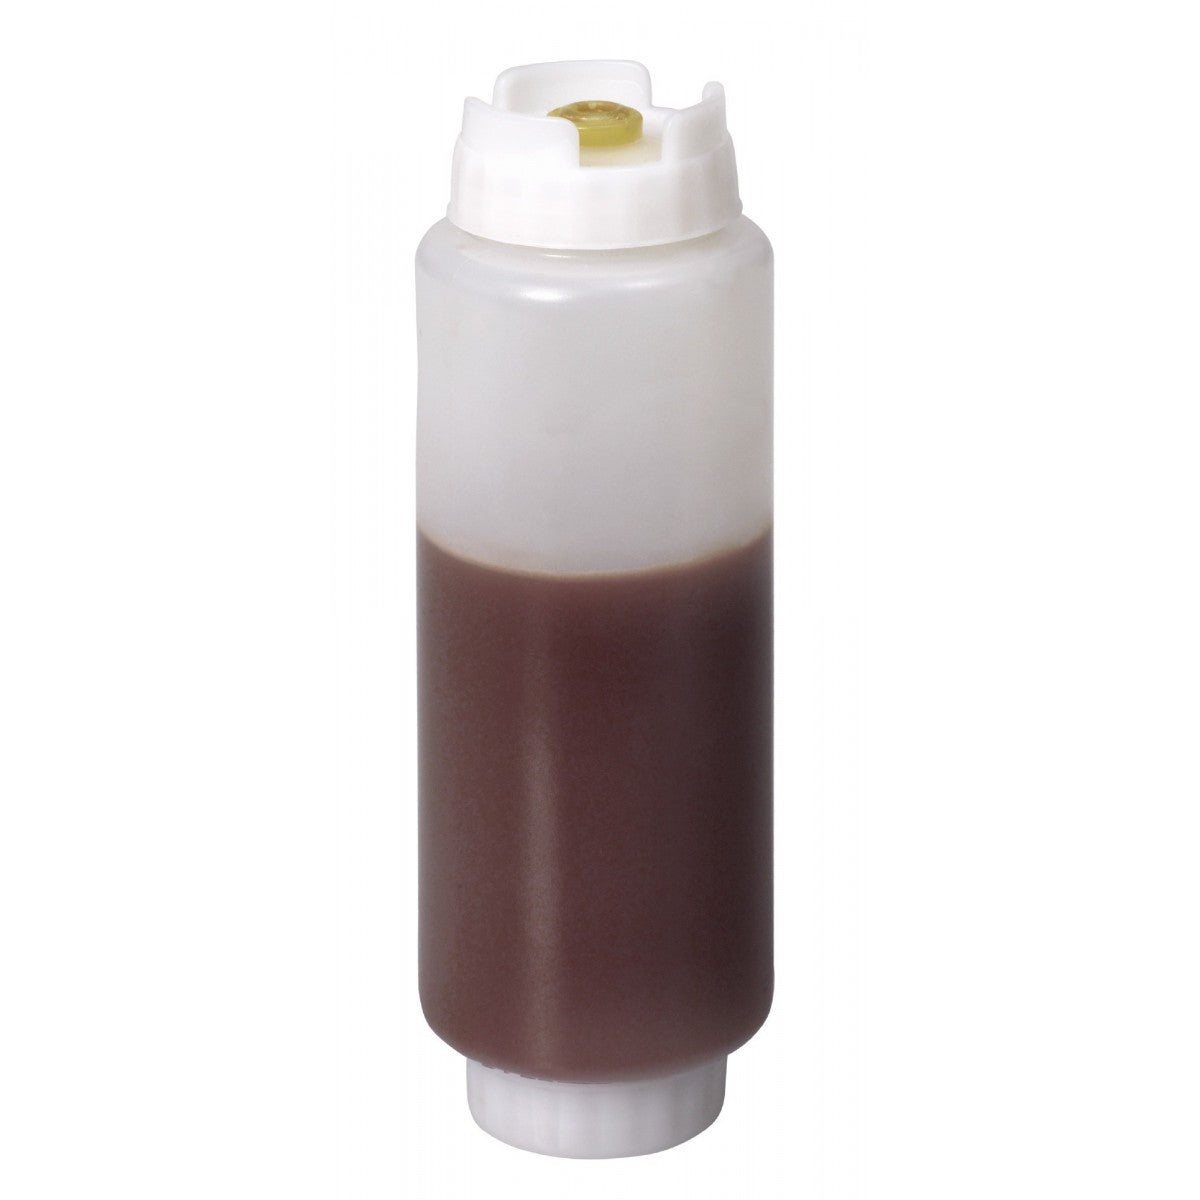 ABM1 - Chocolate spread bottle Krampouz